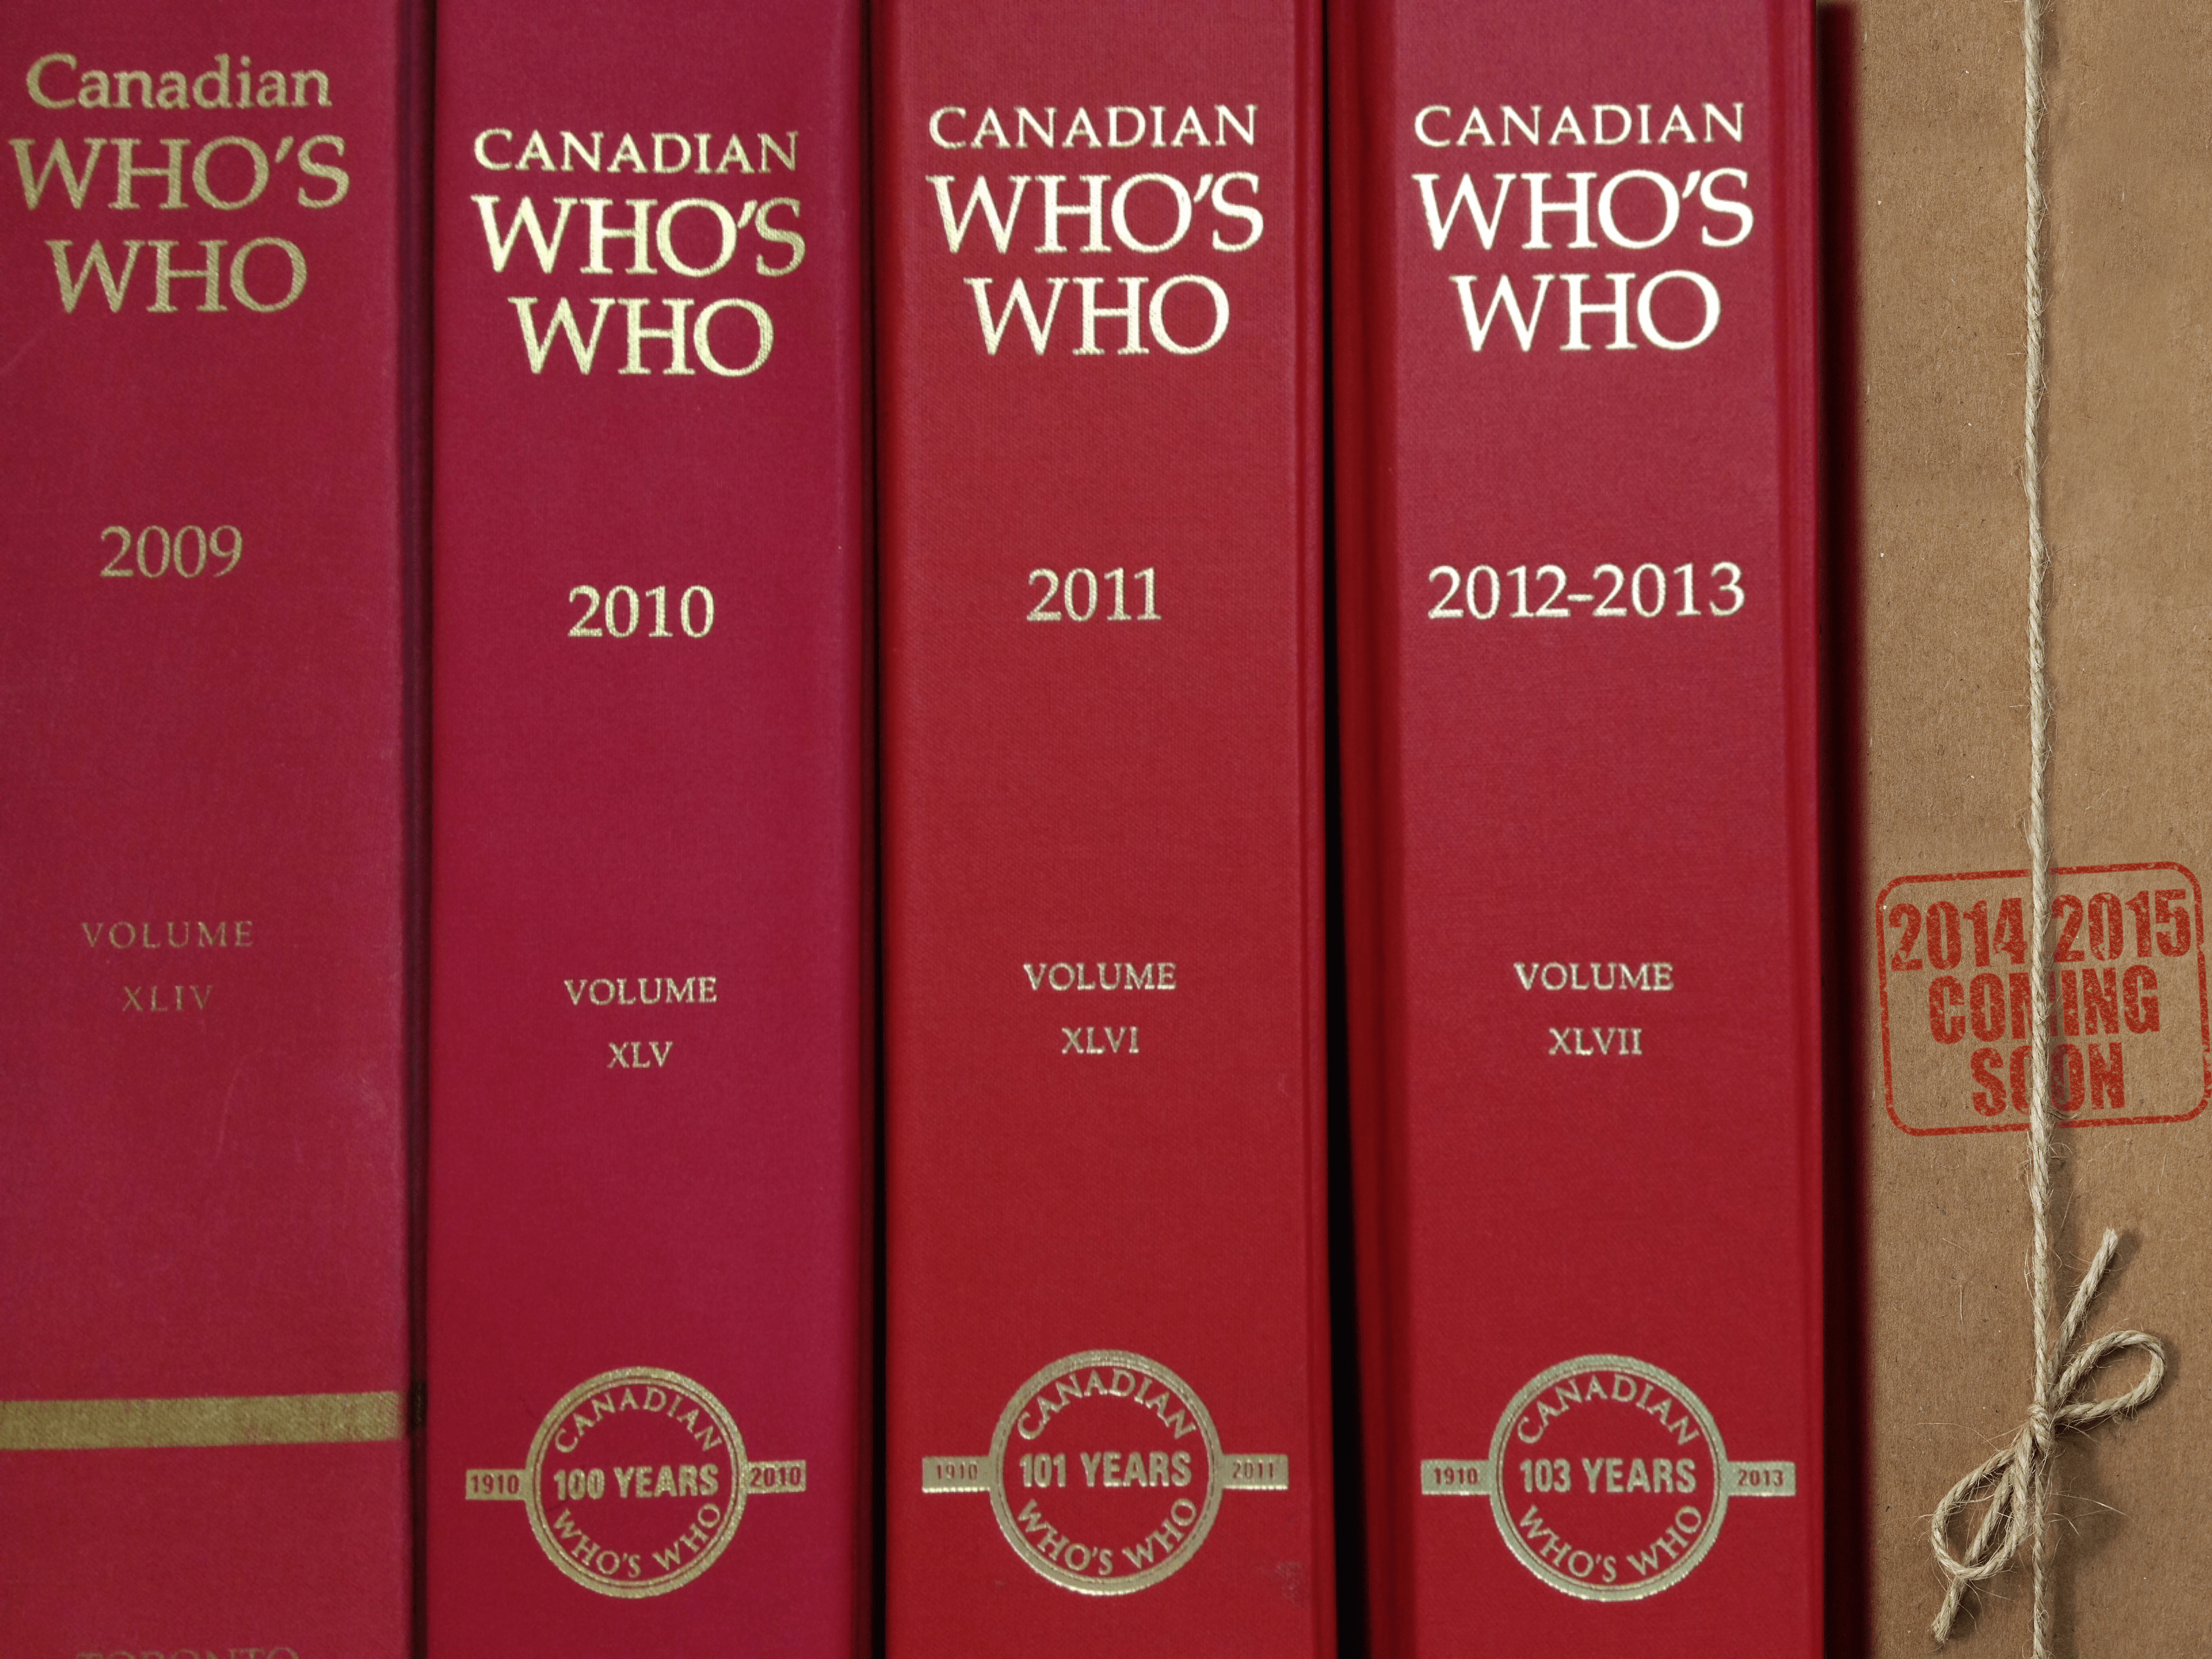 Canadian Who's Who: Coming Soon